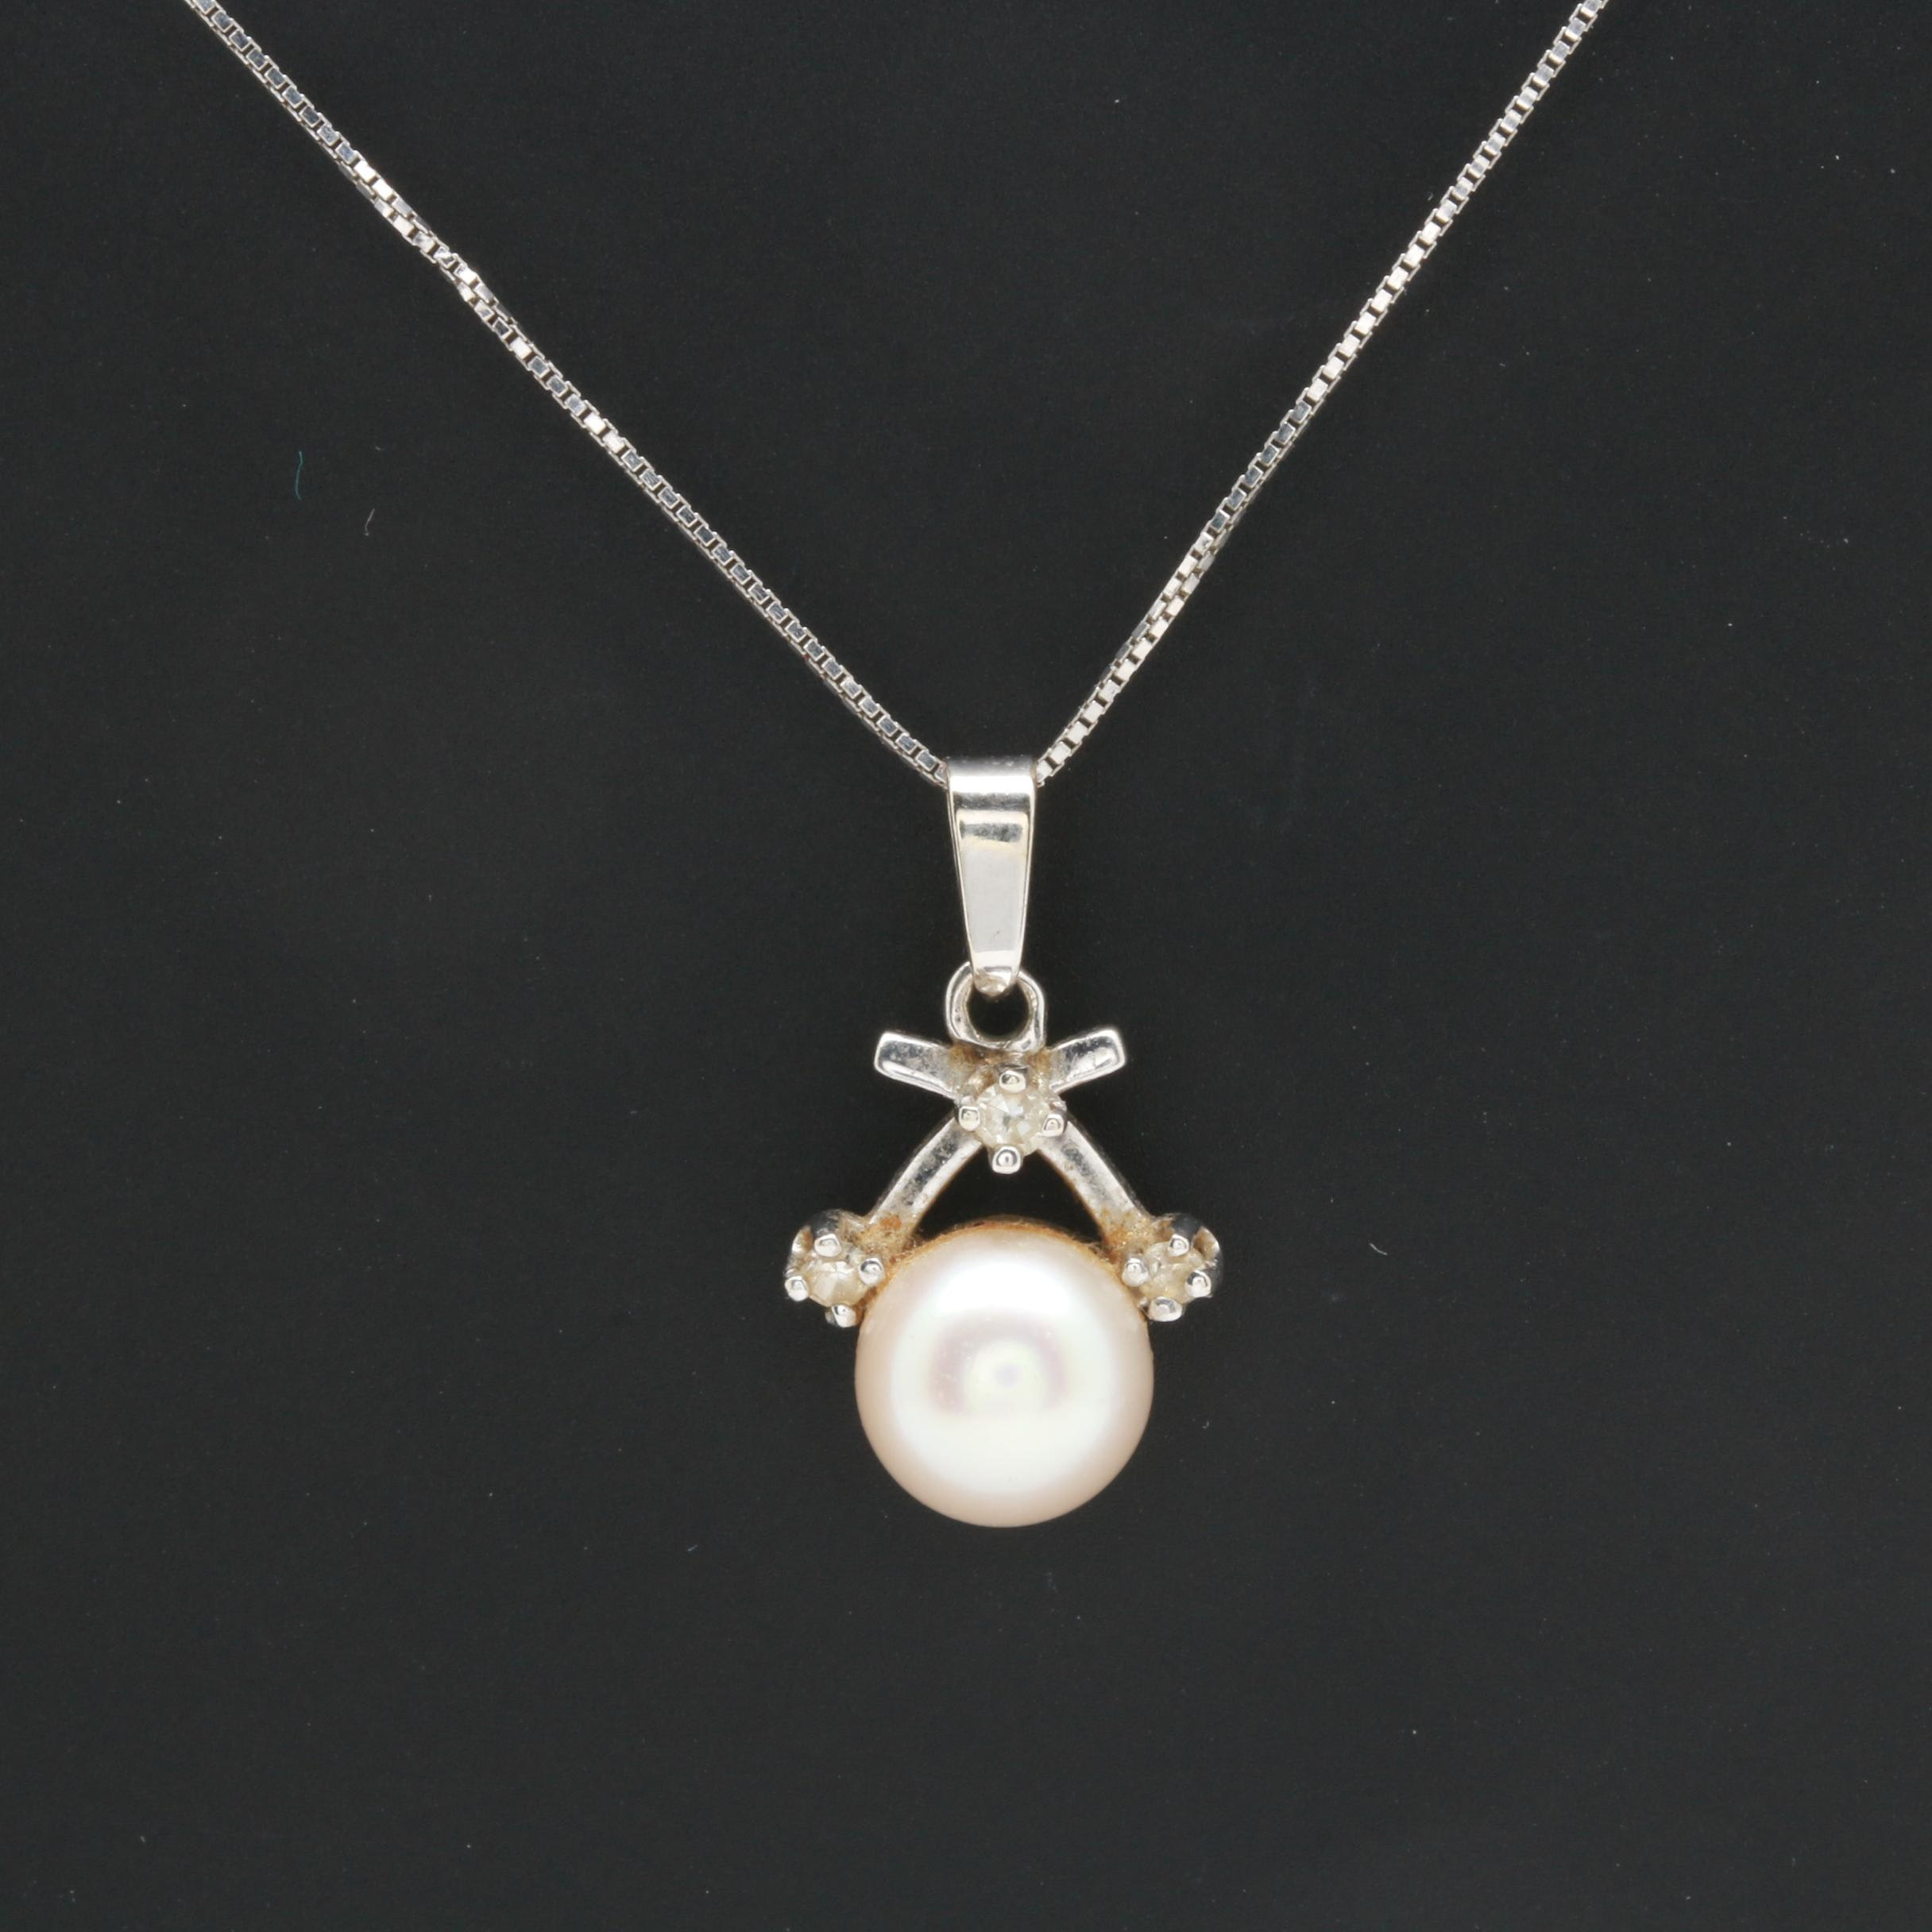 Alwand Vahan 14K White Gold Cultured Pearl and Diamond Pendant Necklace